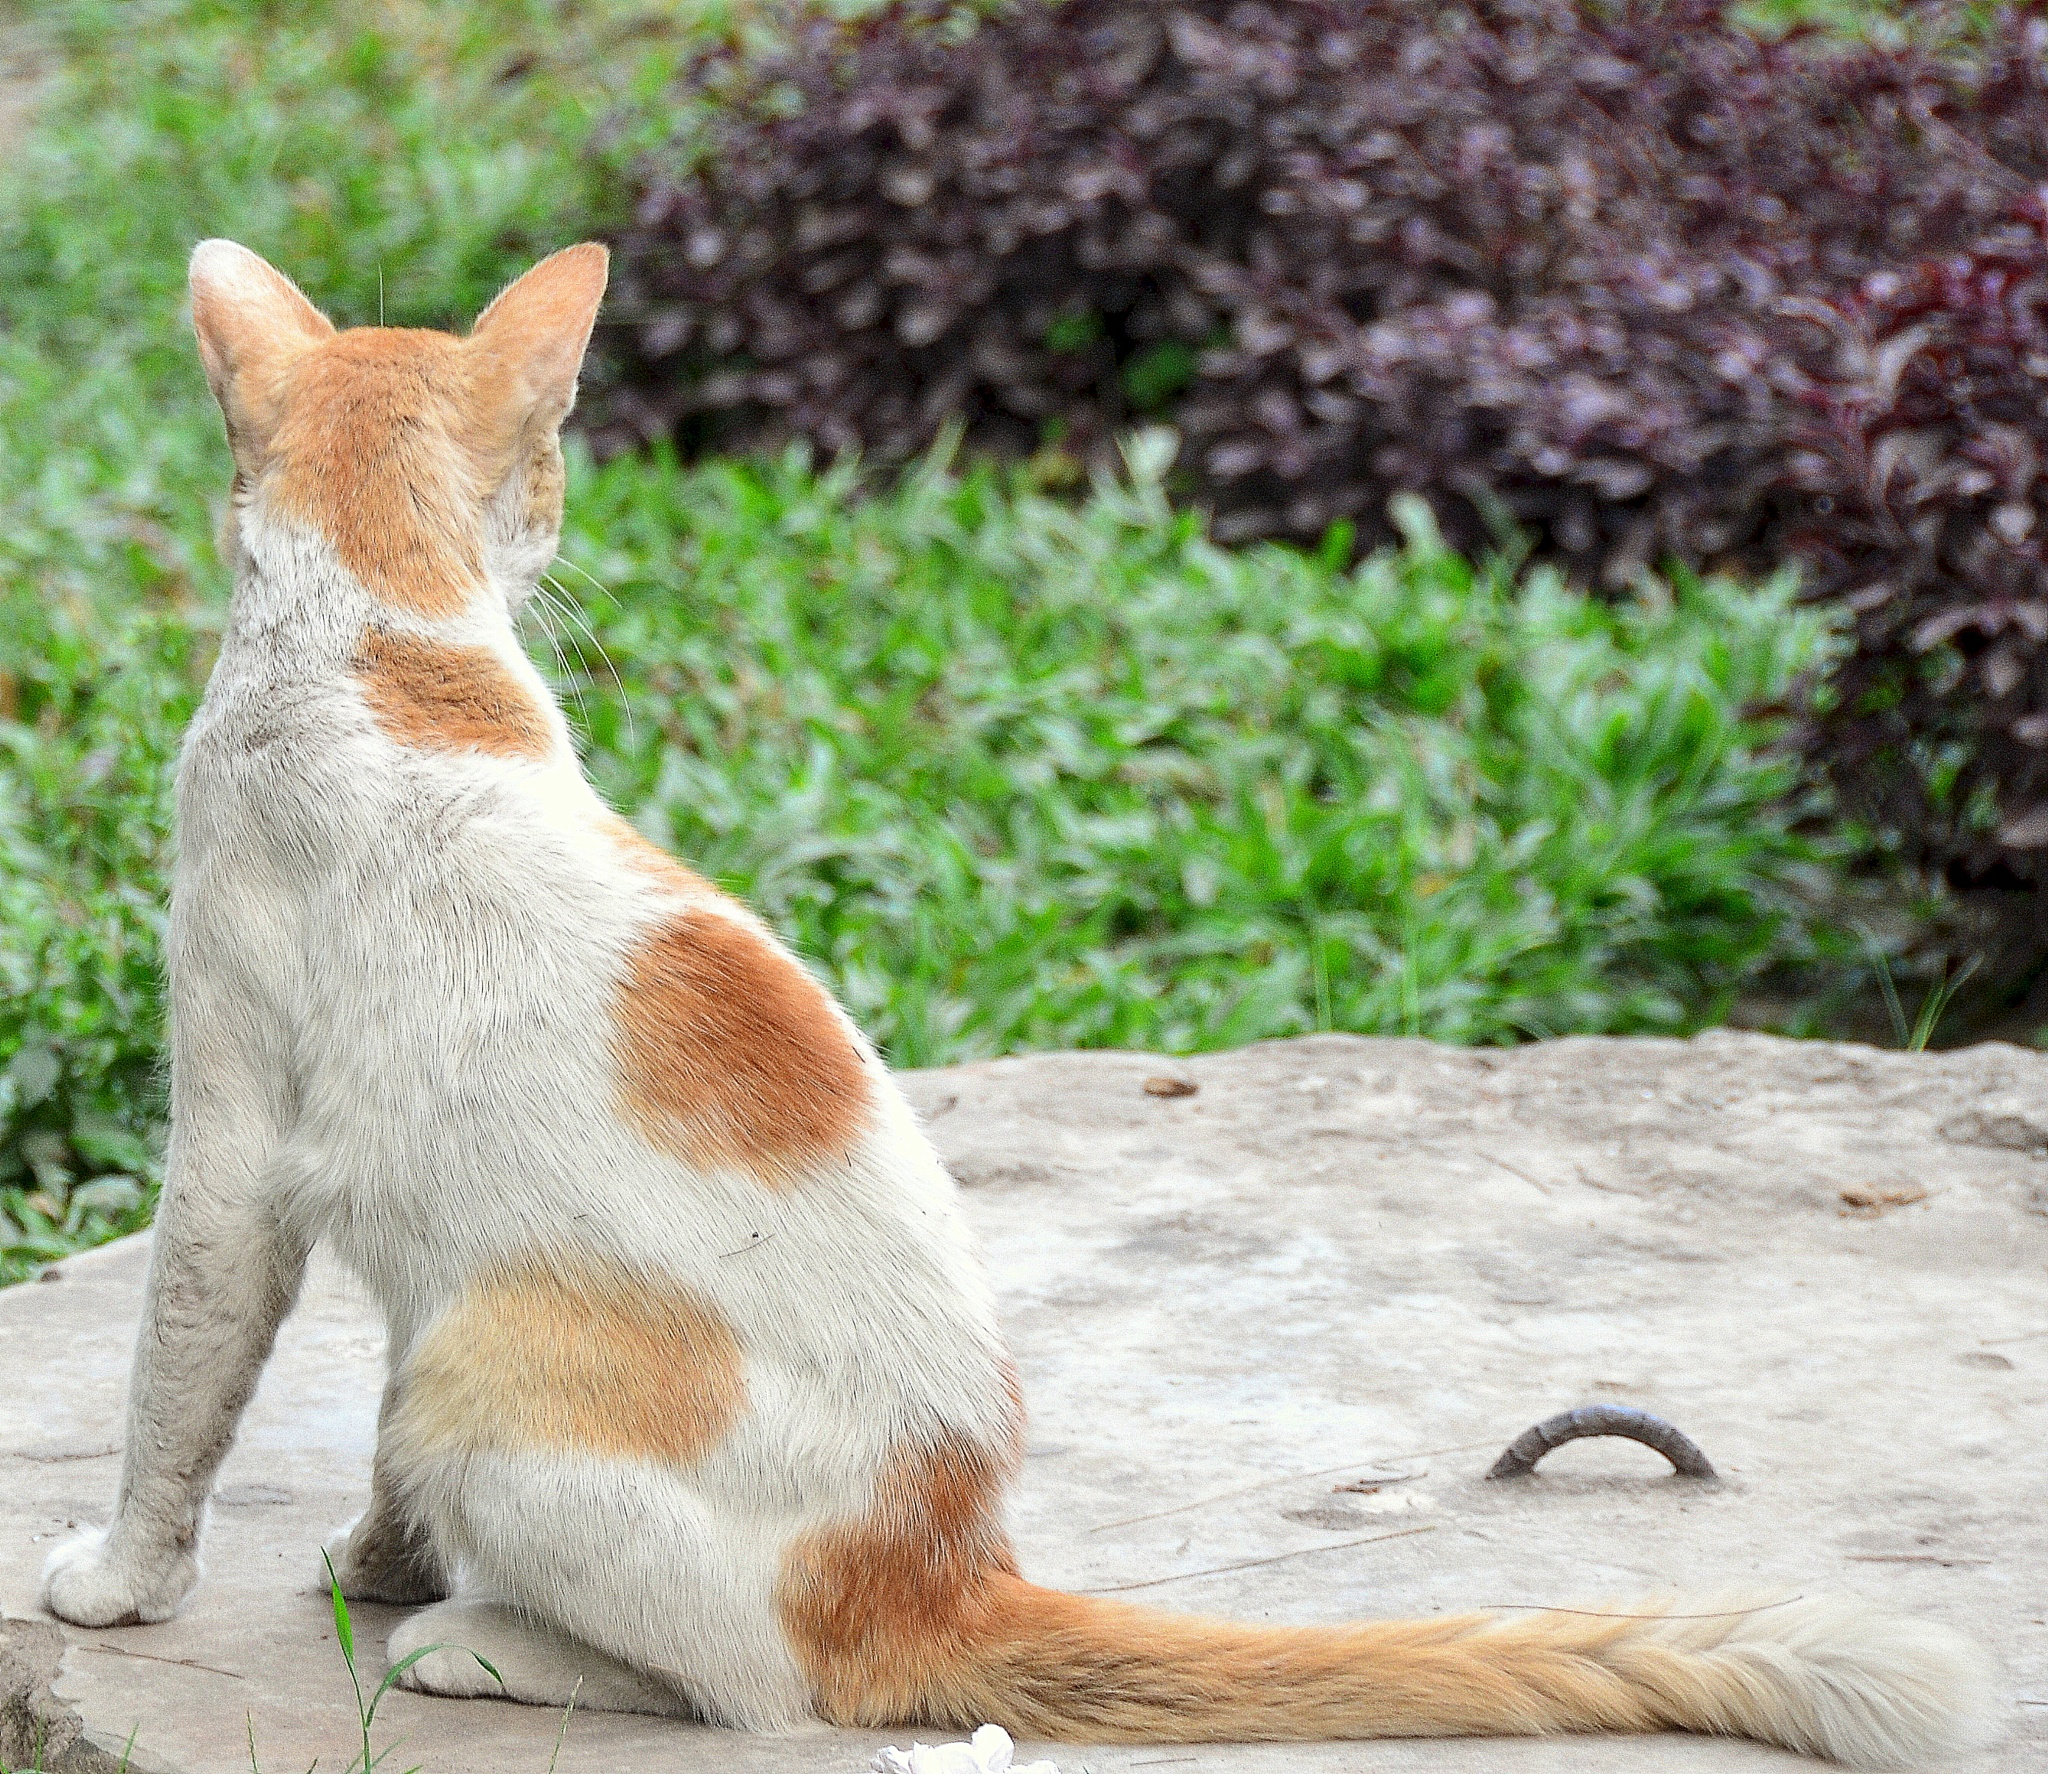 Cat Watching over by Gausul Azam